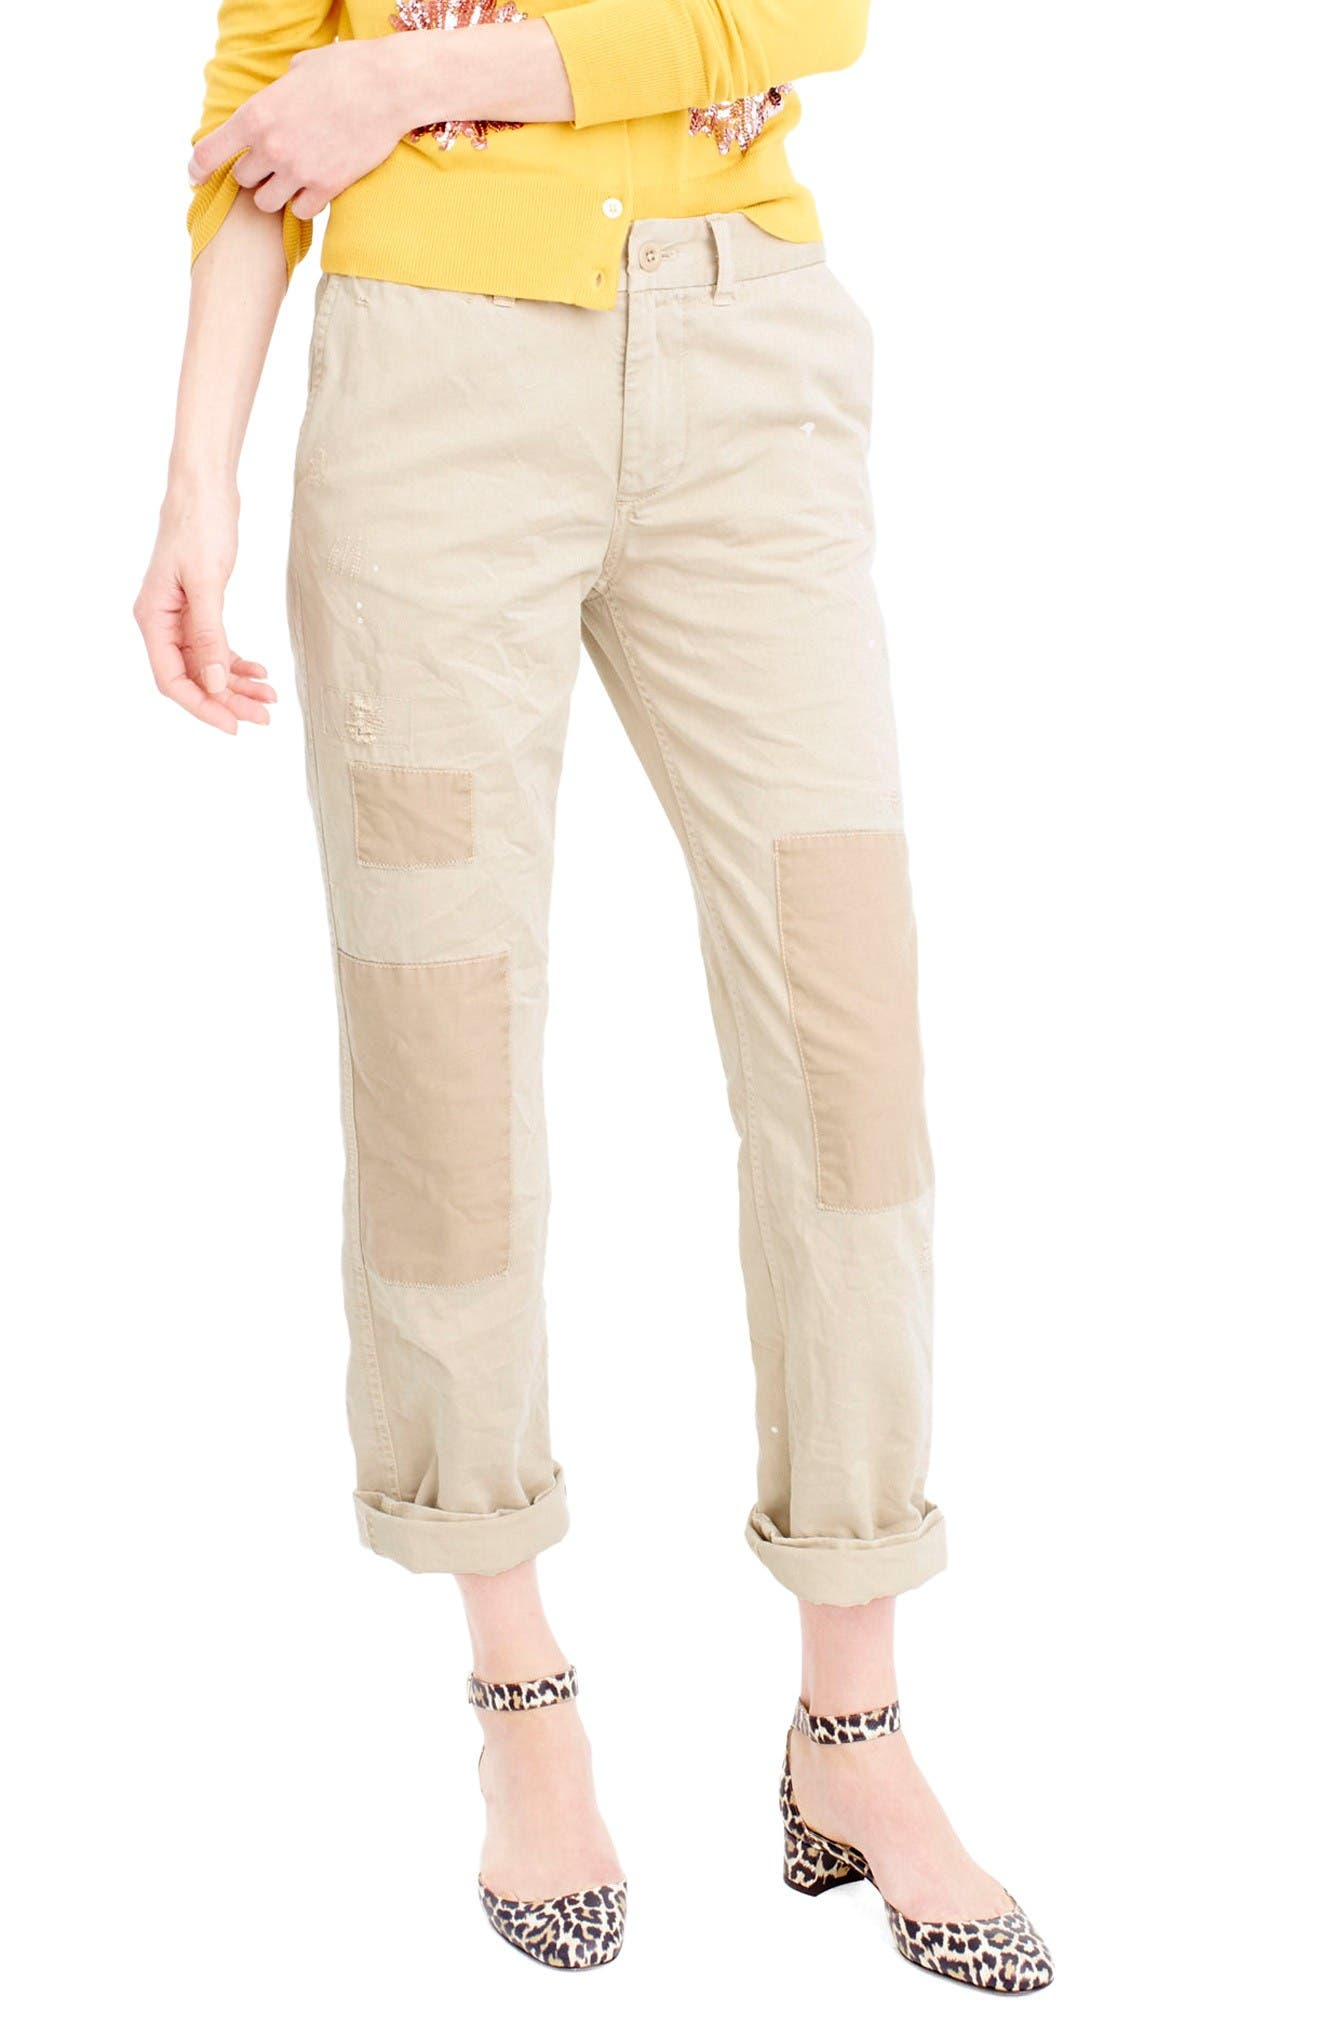 J.CREW Distressed Boyfriend Chino Pants